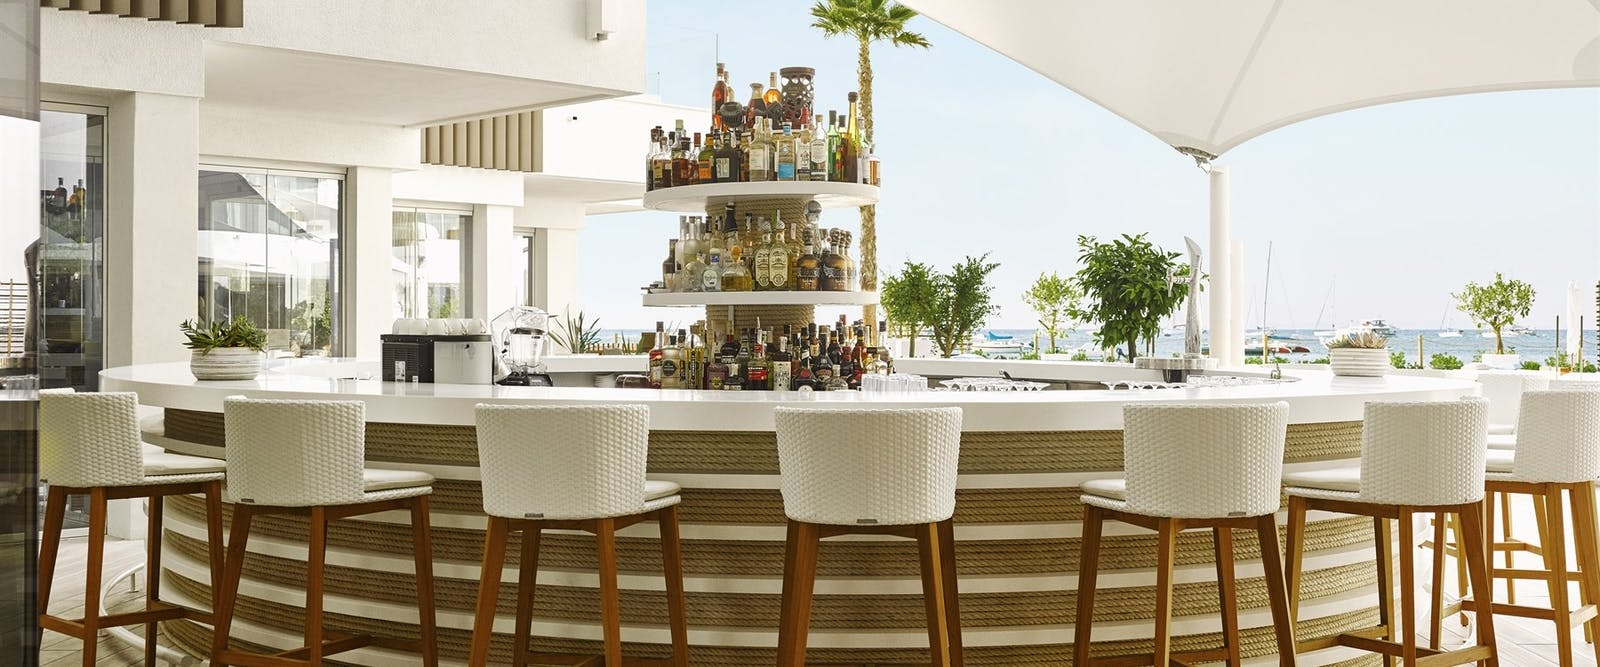 Seating Area at Nobu Hotel Ibiza Bay, Ibiza, Spain